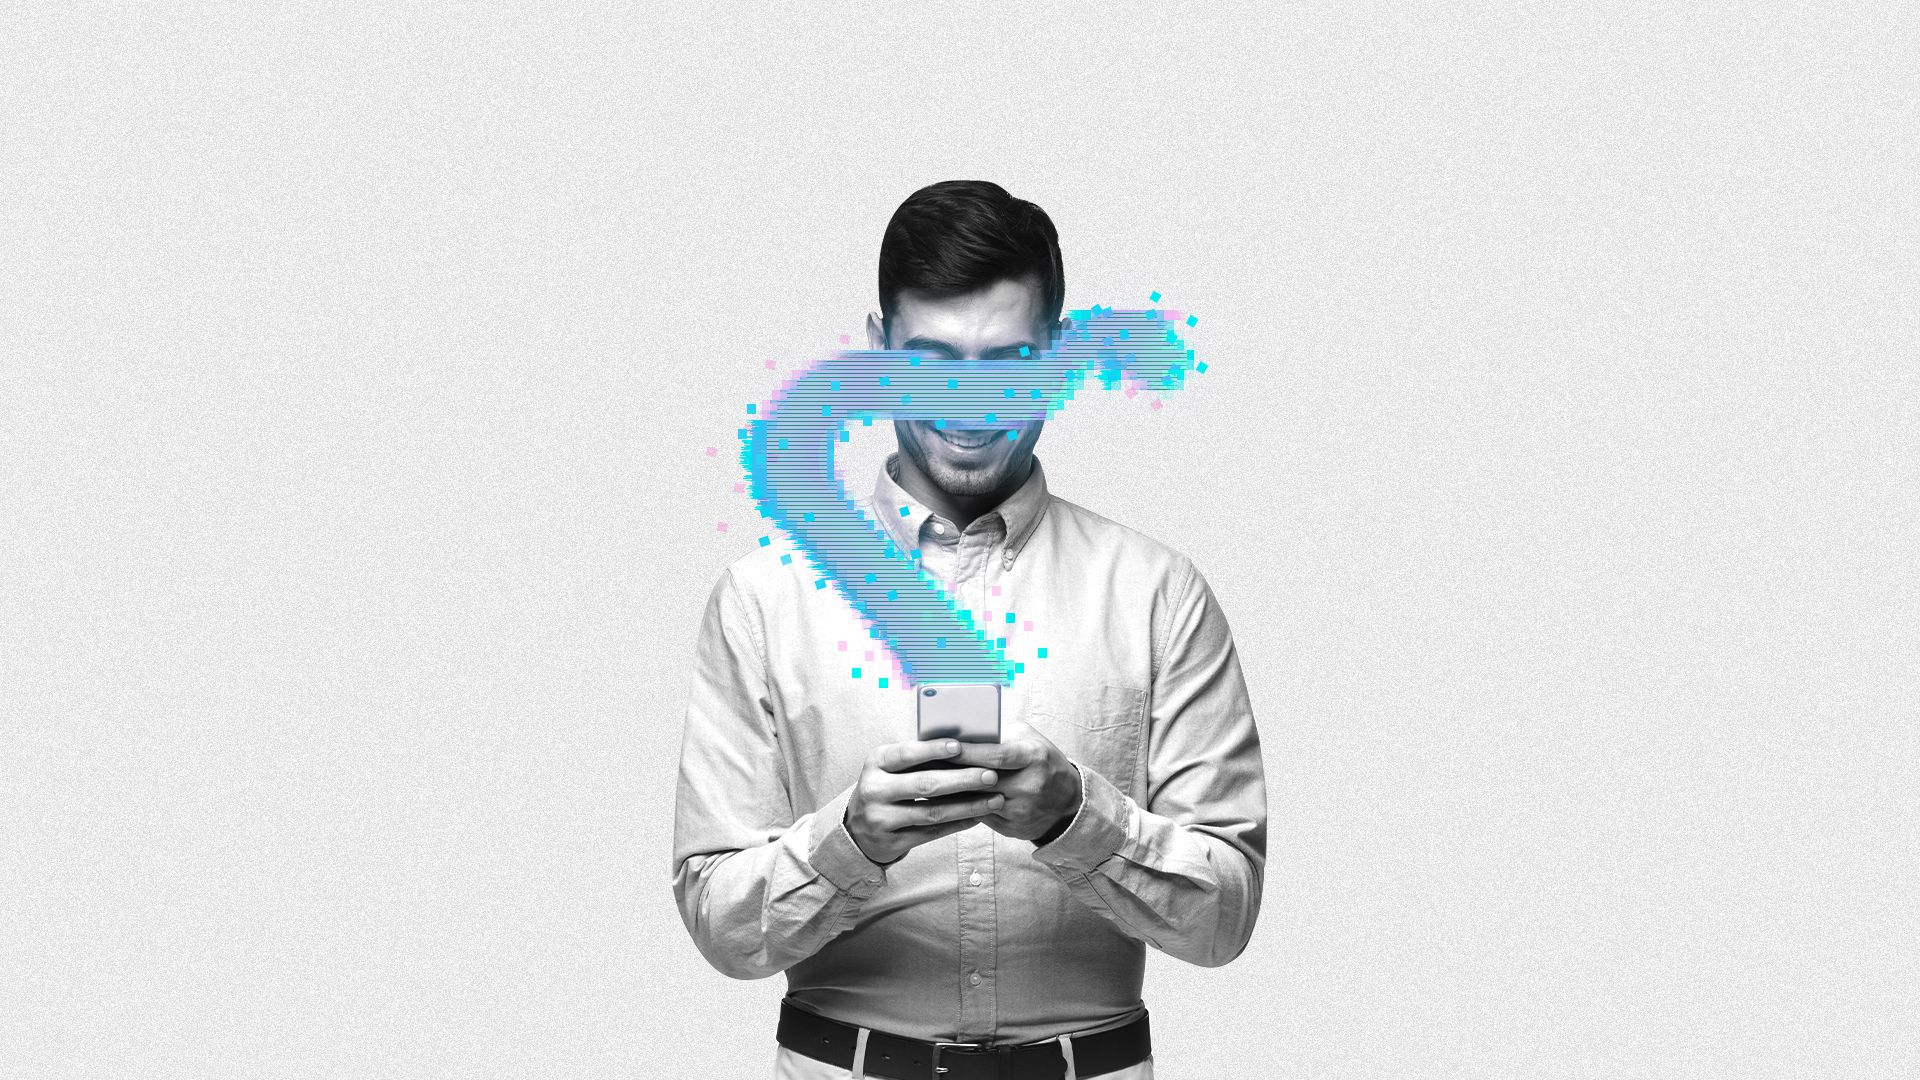 Illustration of a man looking at a phone, with a digital projection coming from the screen and covering his eyes like it's a blindfold